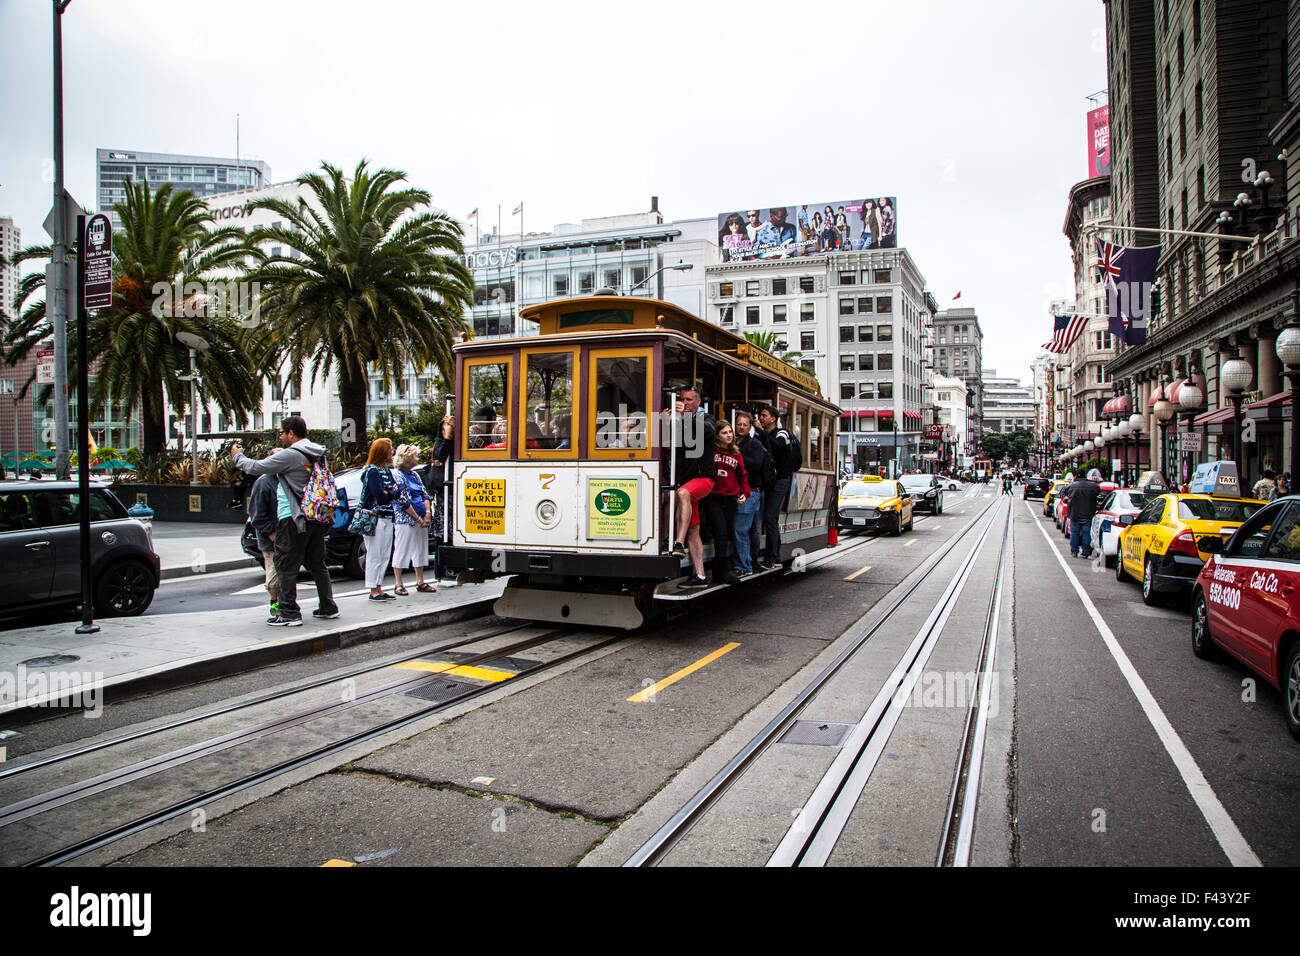 Cable Car pasing in front of Union Square, San Francisco, California - Stock Image